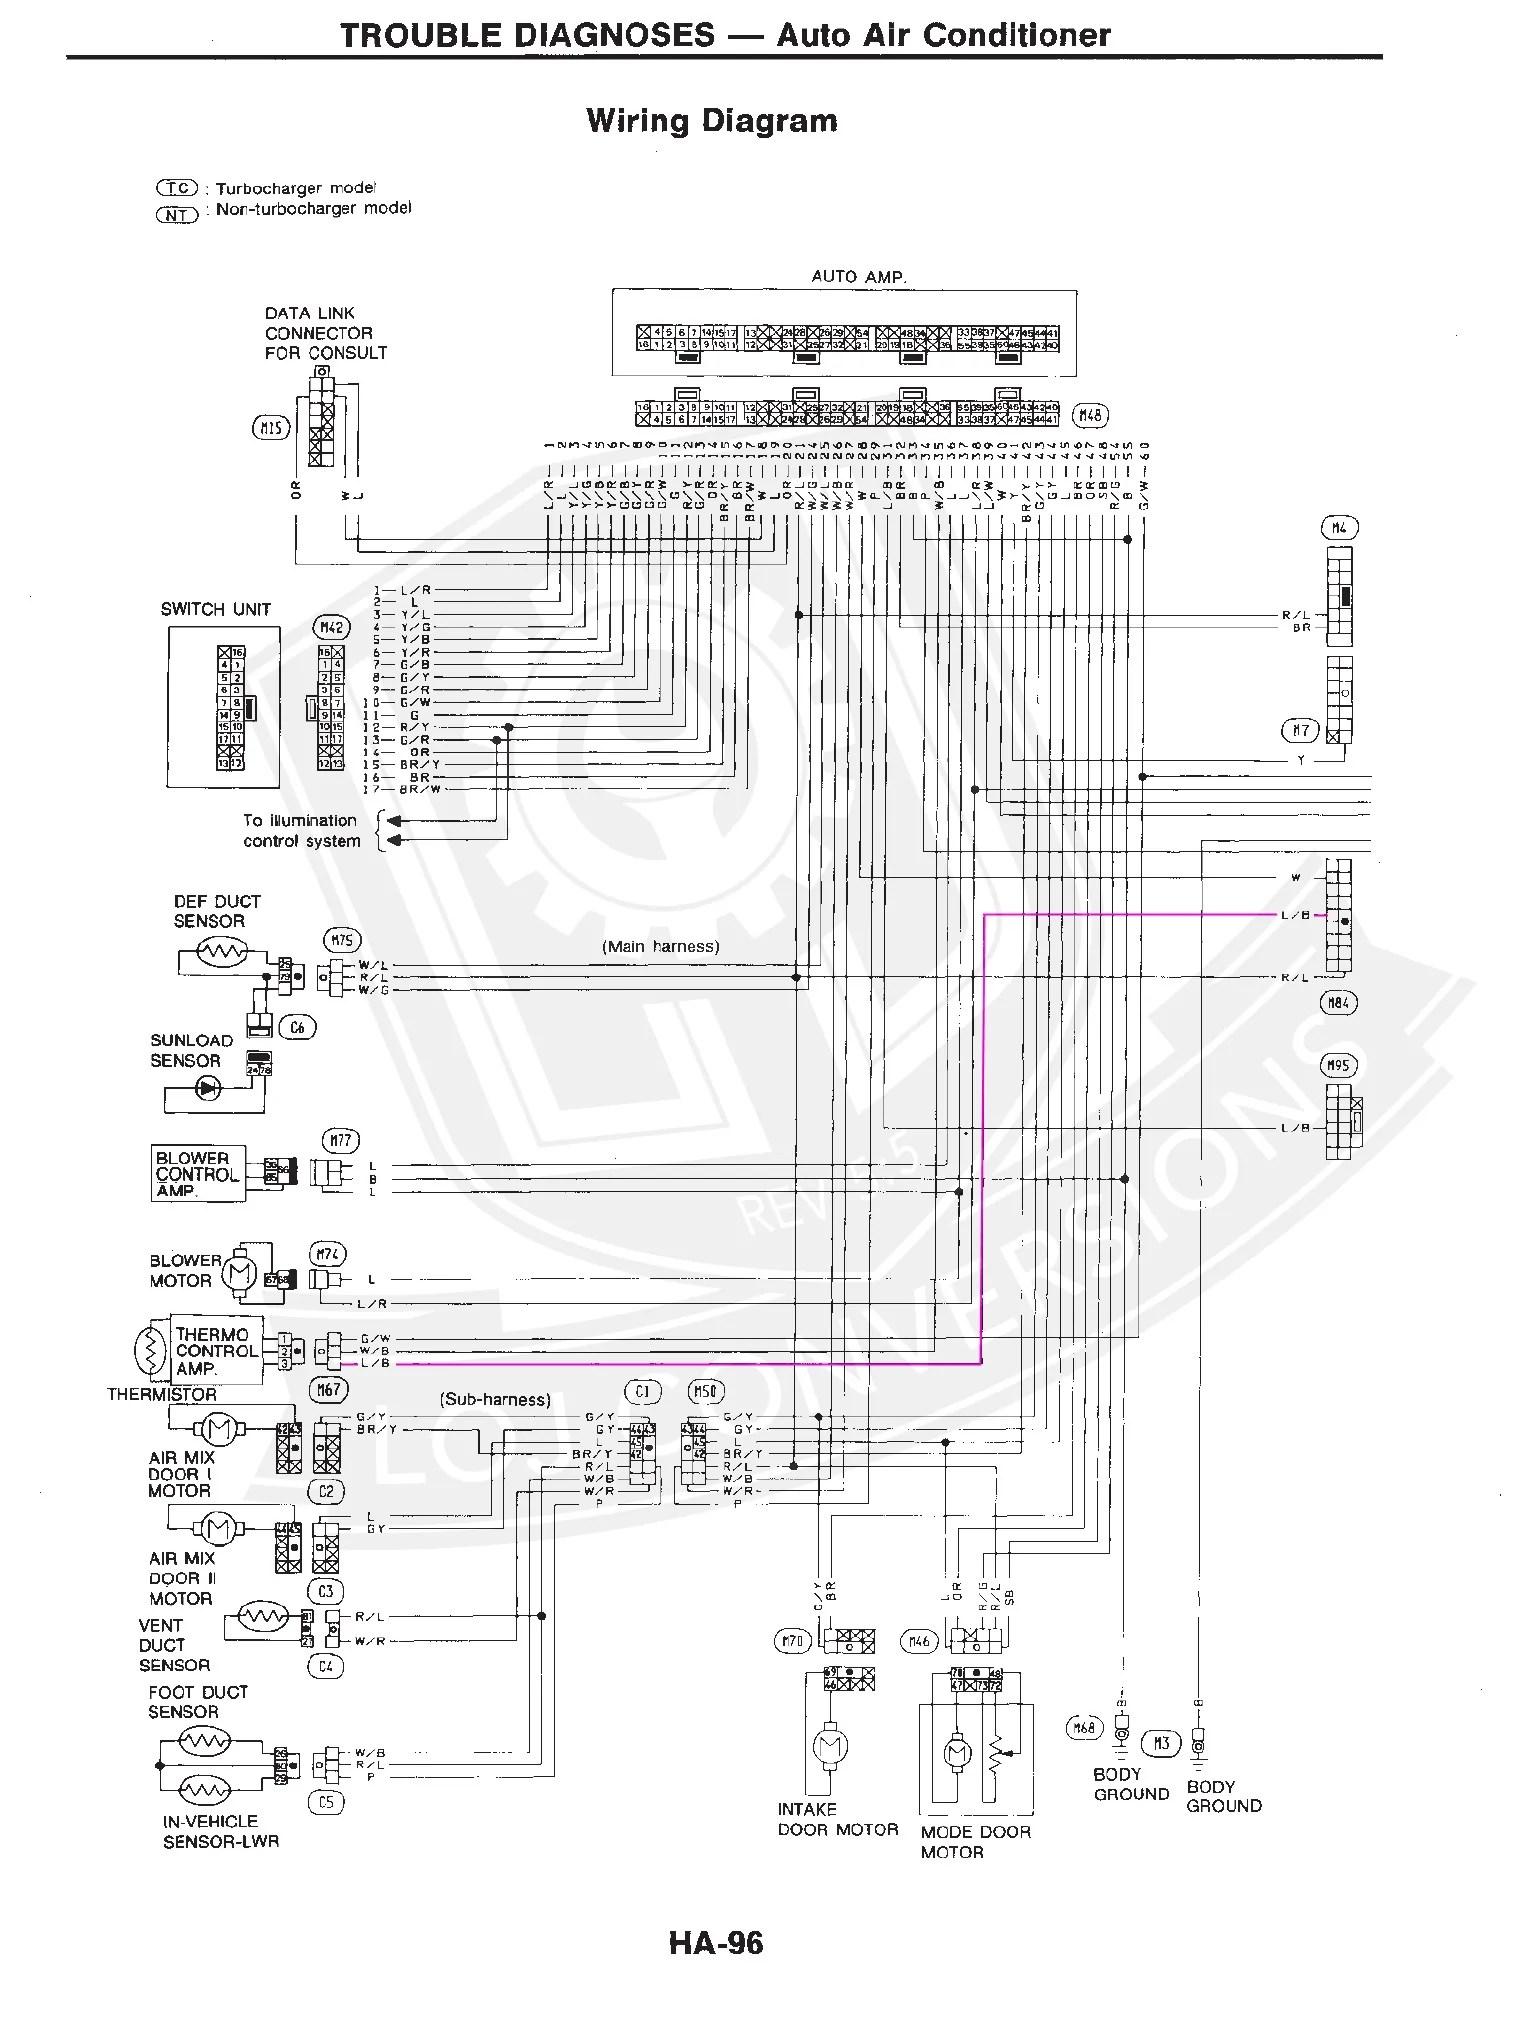 medium resolution of diagram likewise 1990 nissan 300zx wiring harness diagram also 1991 wiring diagram also 1990 nissan 300zx engine wiring harness further